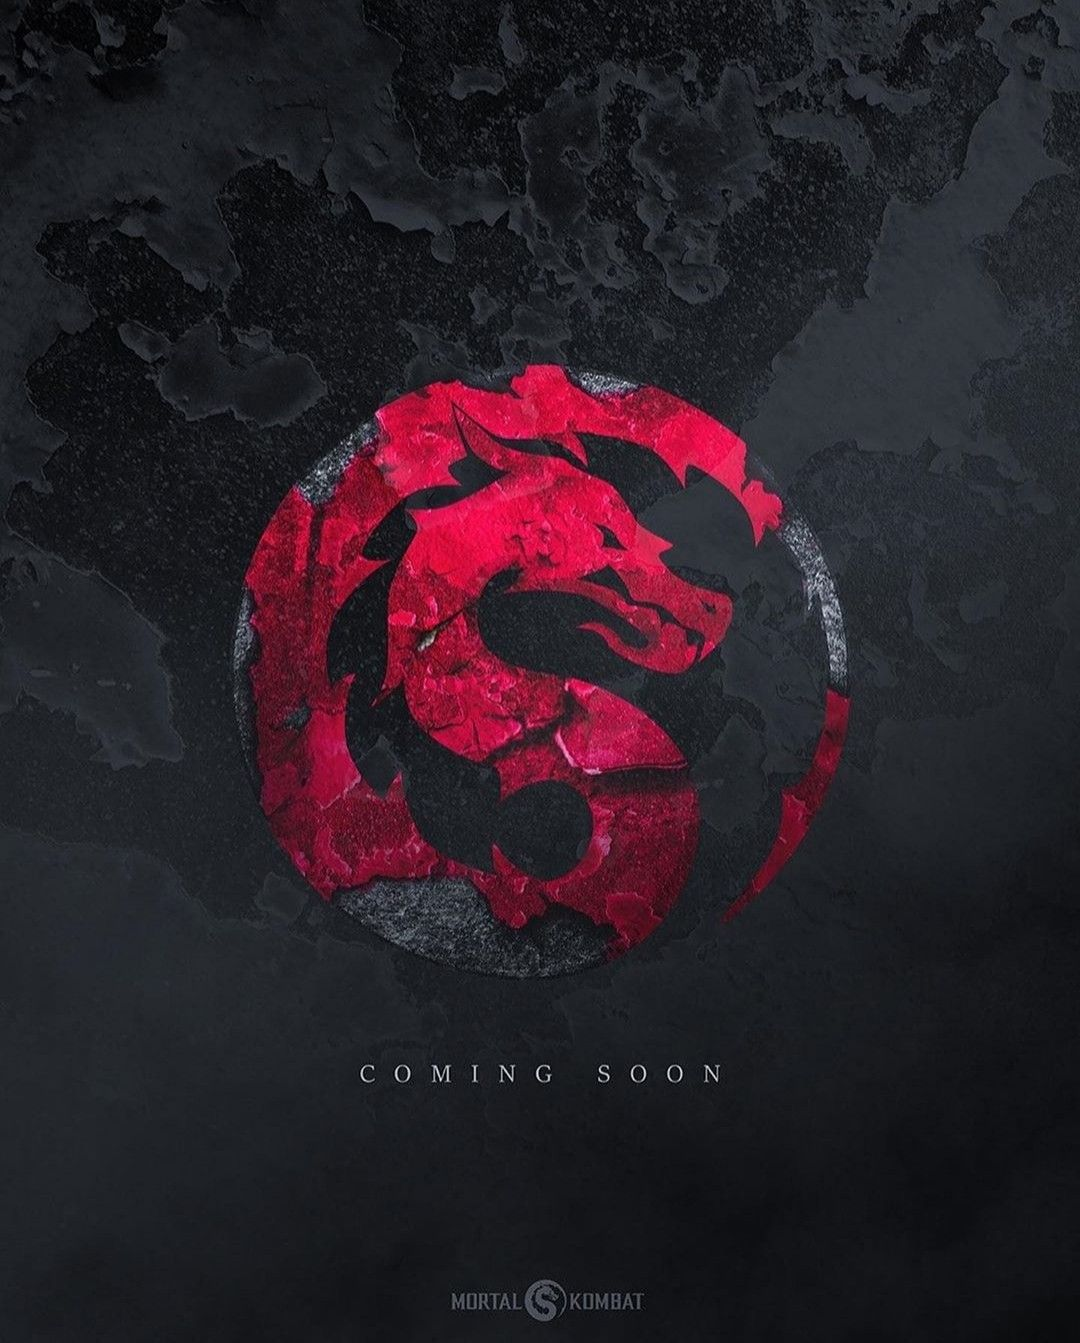 Mortal Kombat Film Logo By Bosslogic Mortal Kombat Filmes